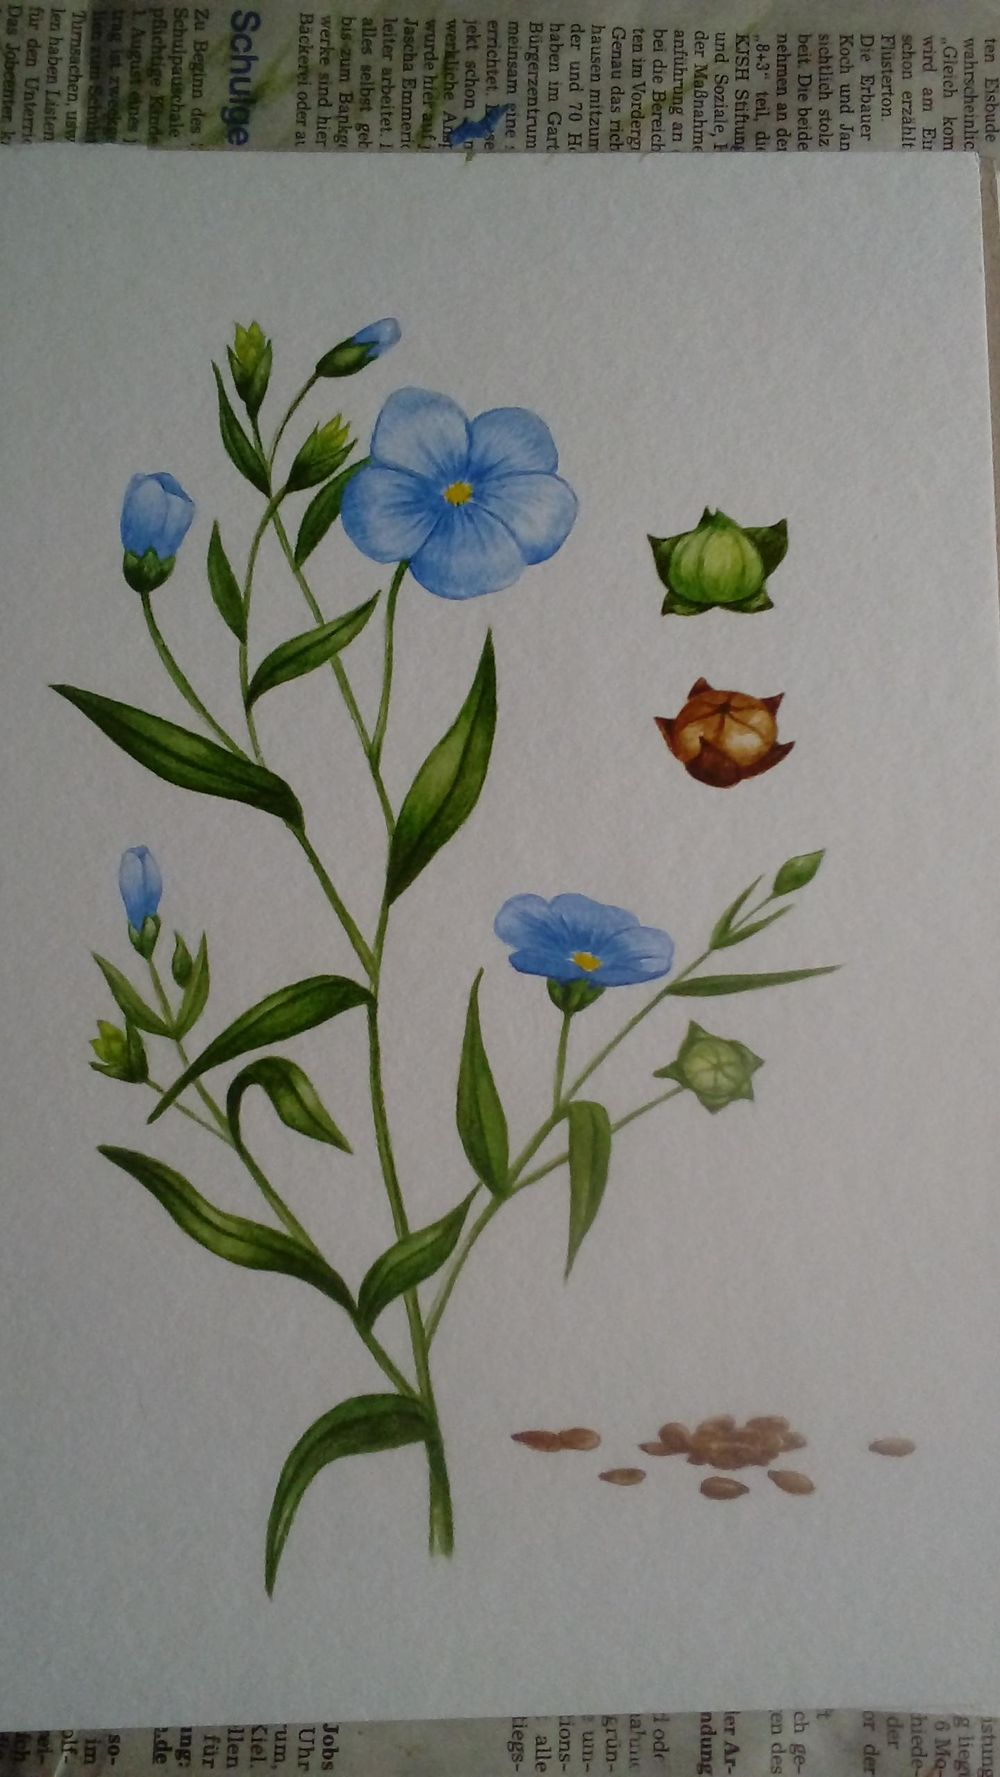 Linseed illustration - image 2 - student project